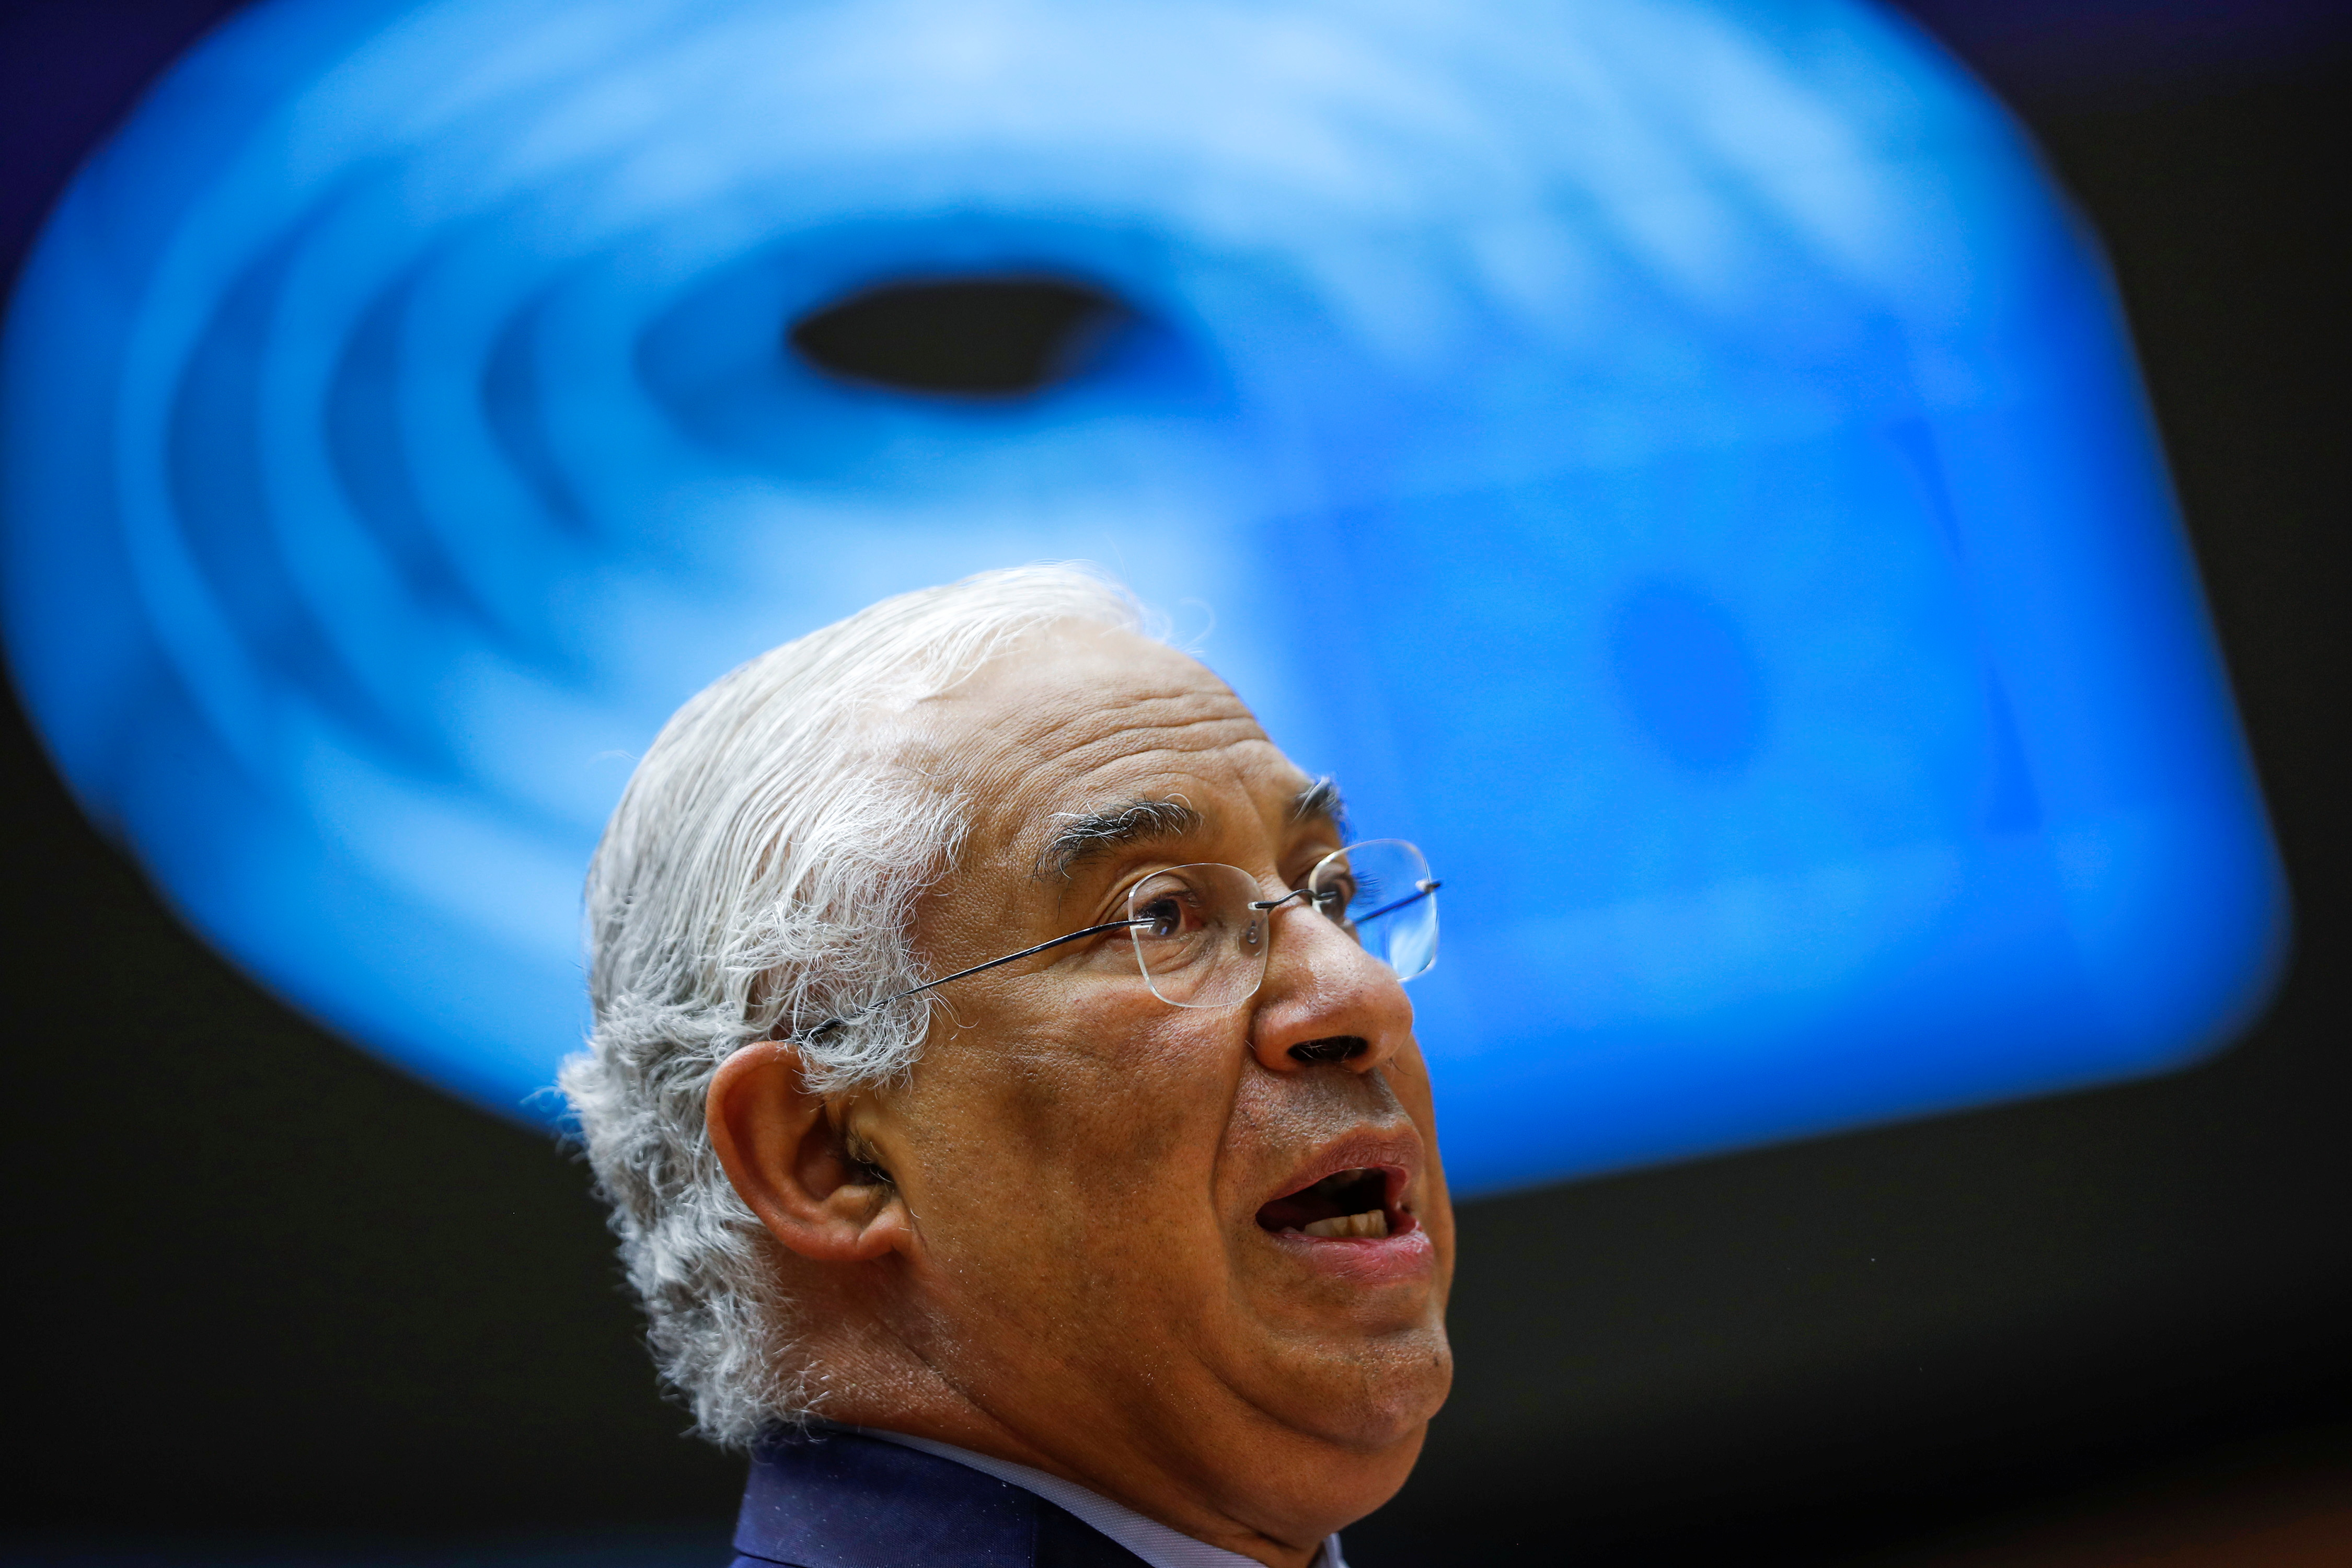 Portuguese Prime Minister Antonio Costa addresses European lawmakers during the presentation of the programme of activities of the Portugal